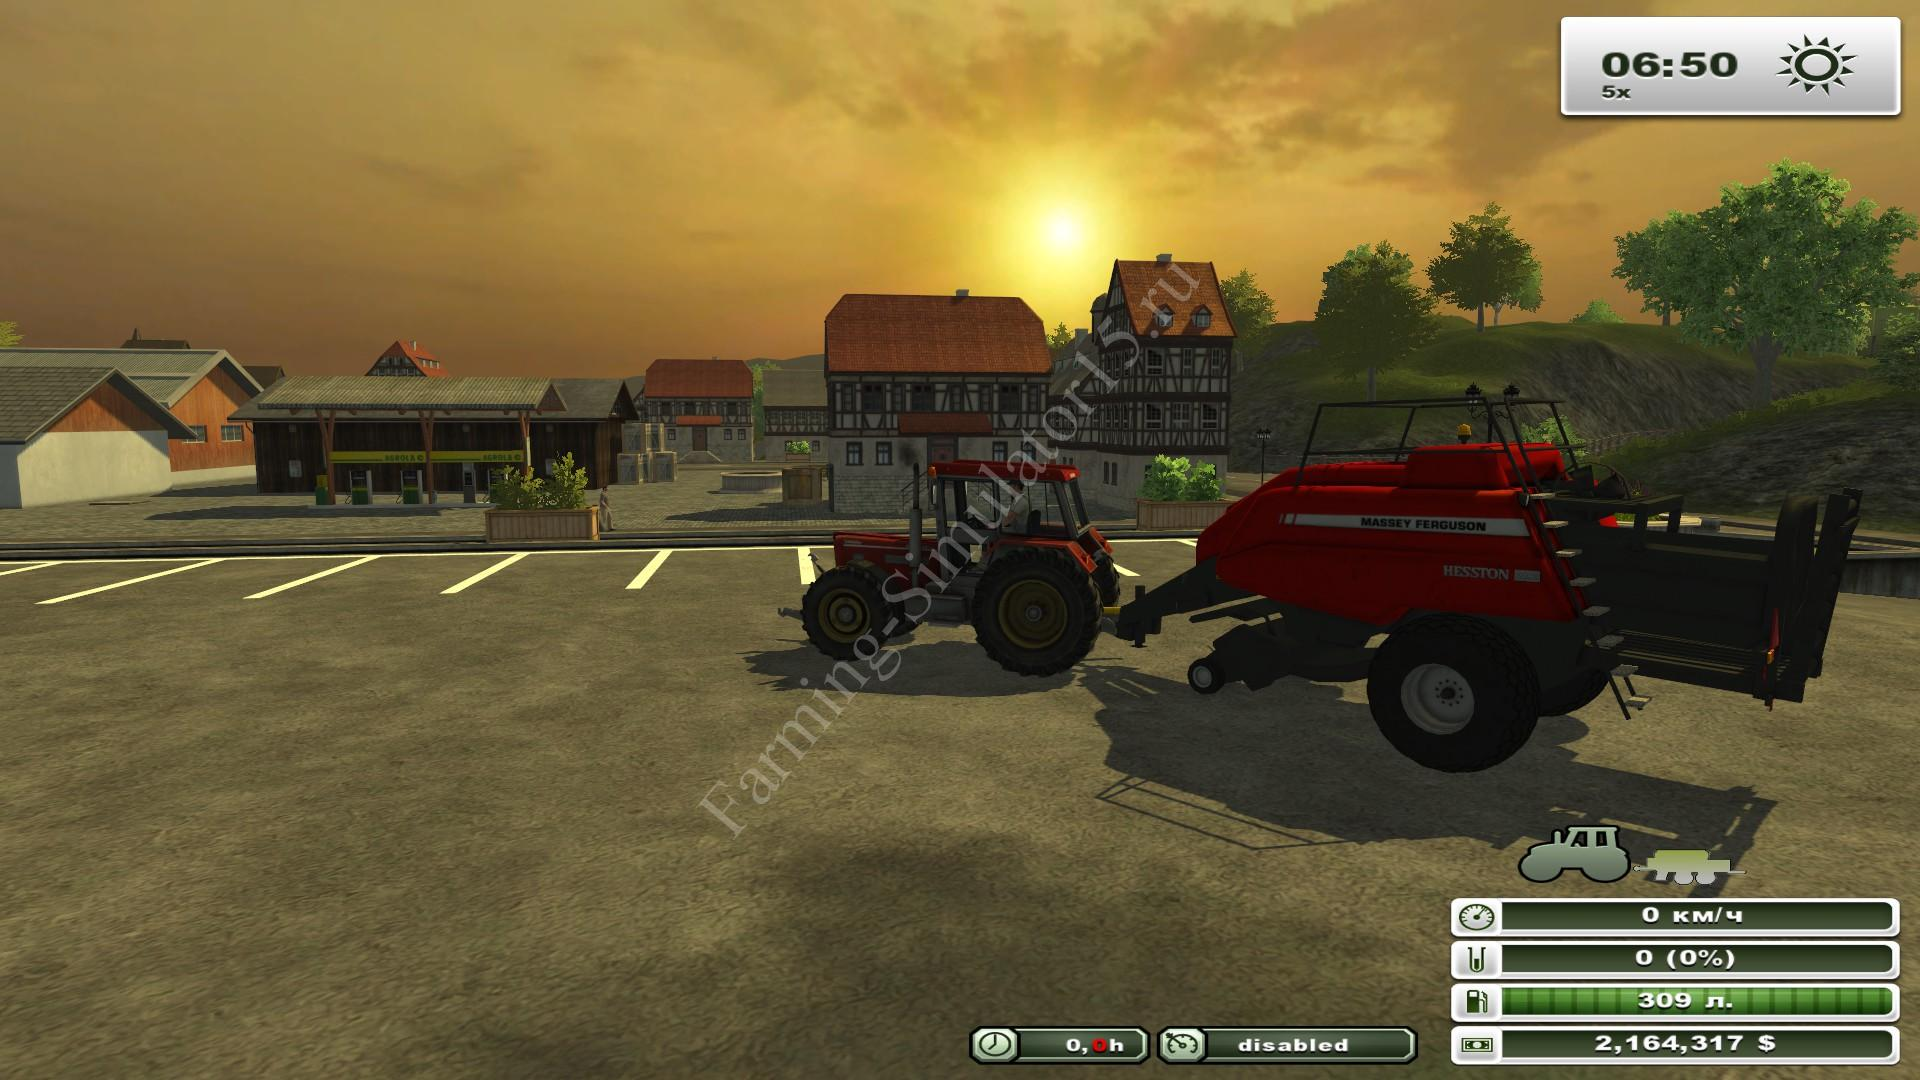 Massey Ferguson 2190 BB v 3.0 - мод тюкопресса Farming Simulator 13, Farming Simulator 2013